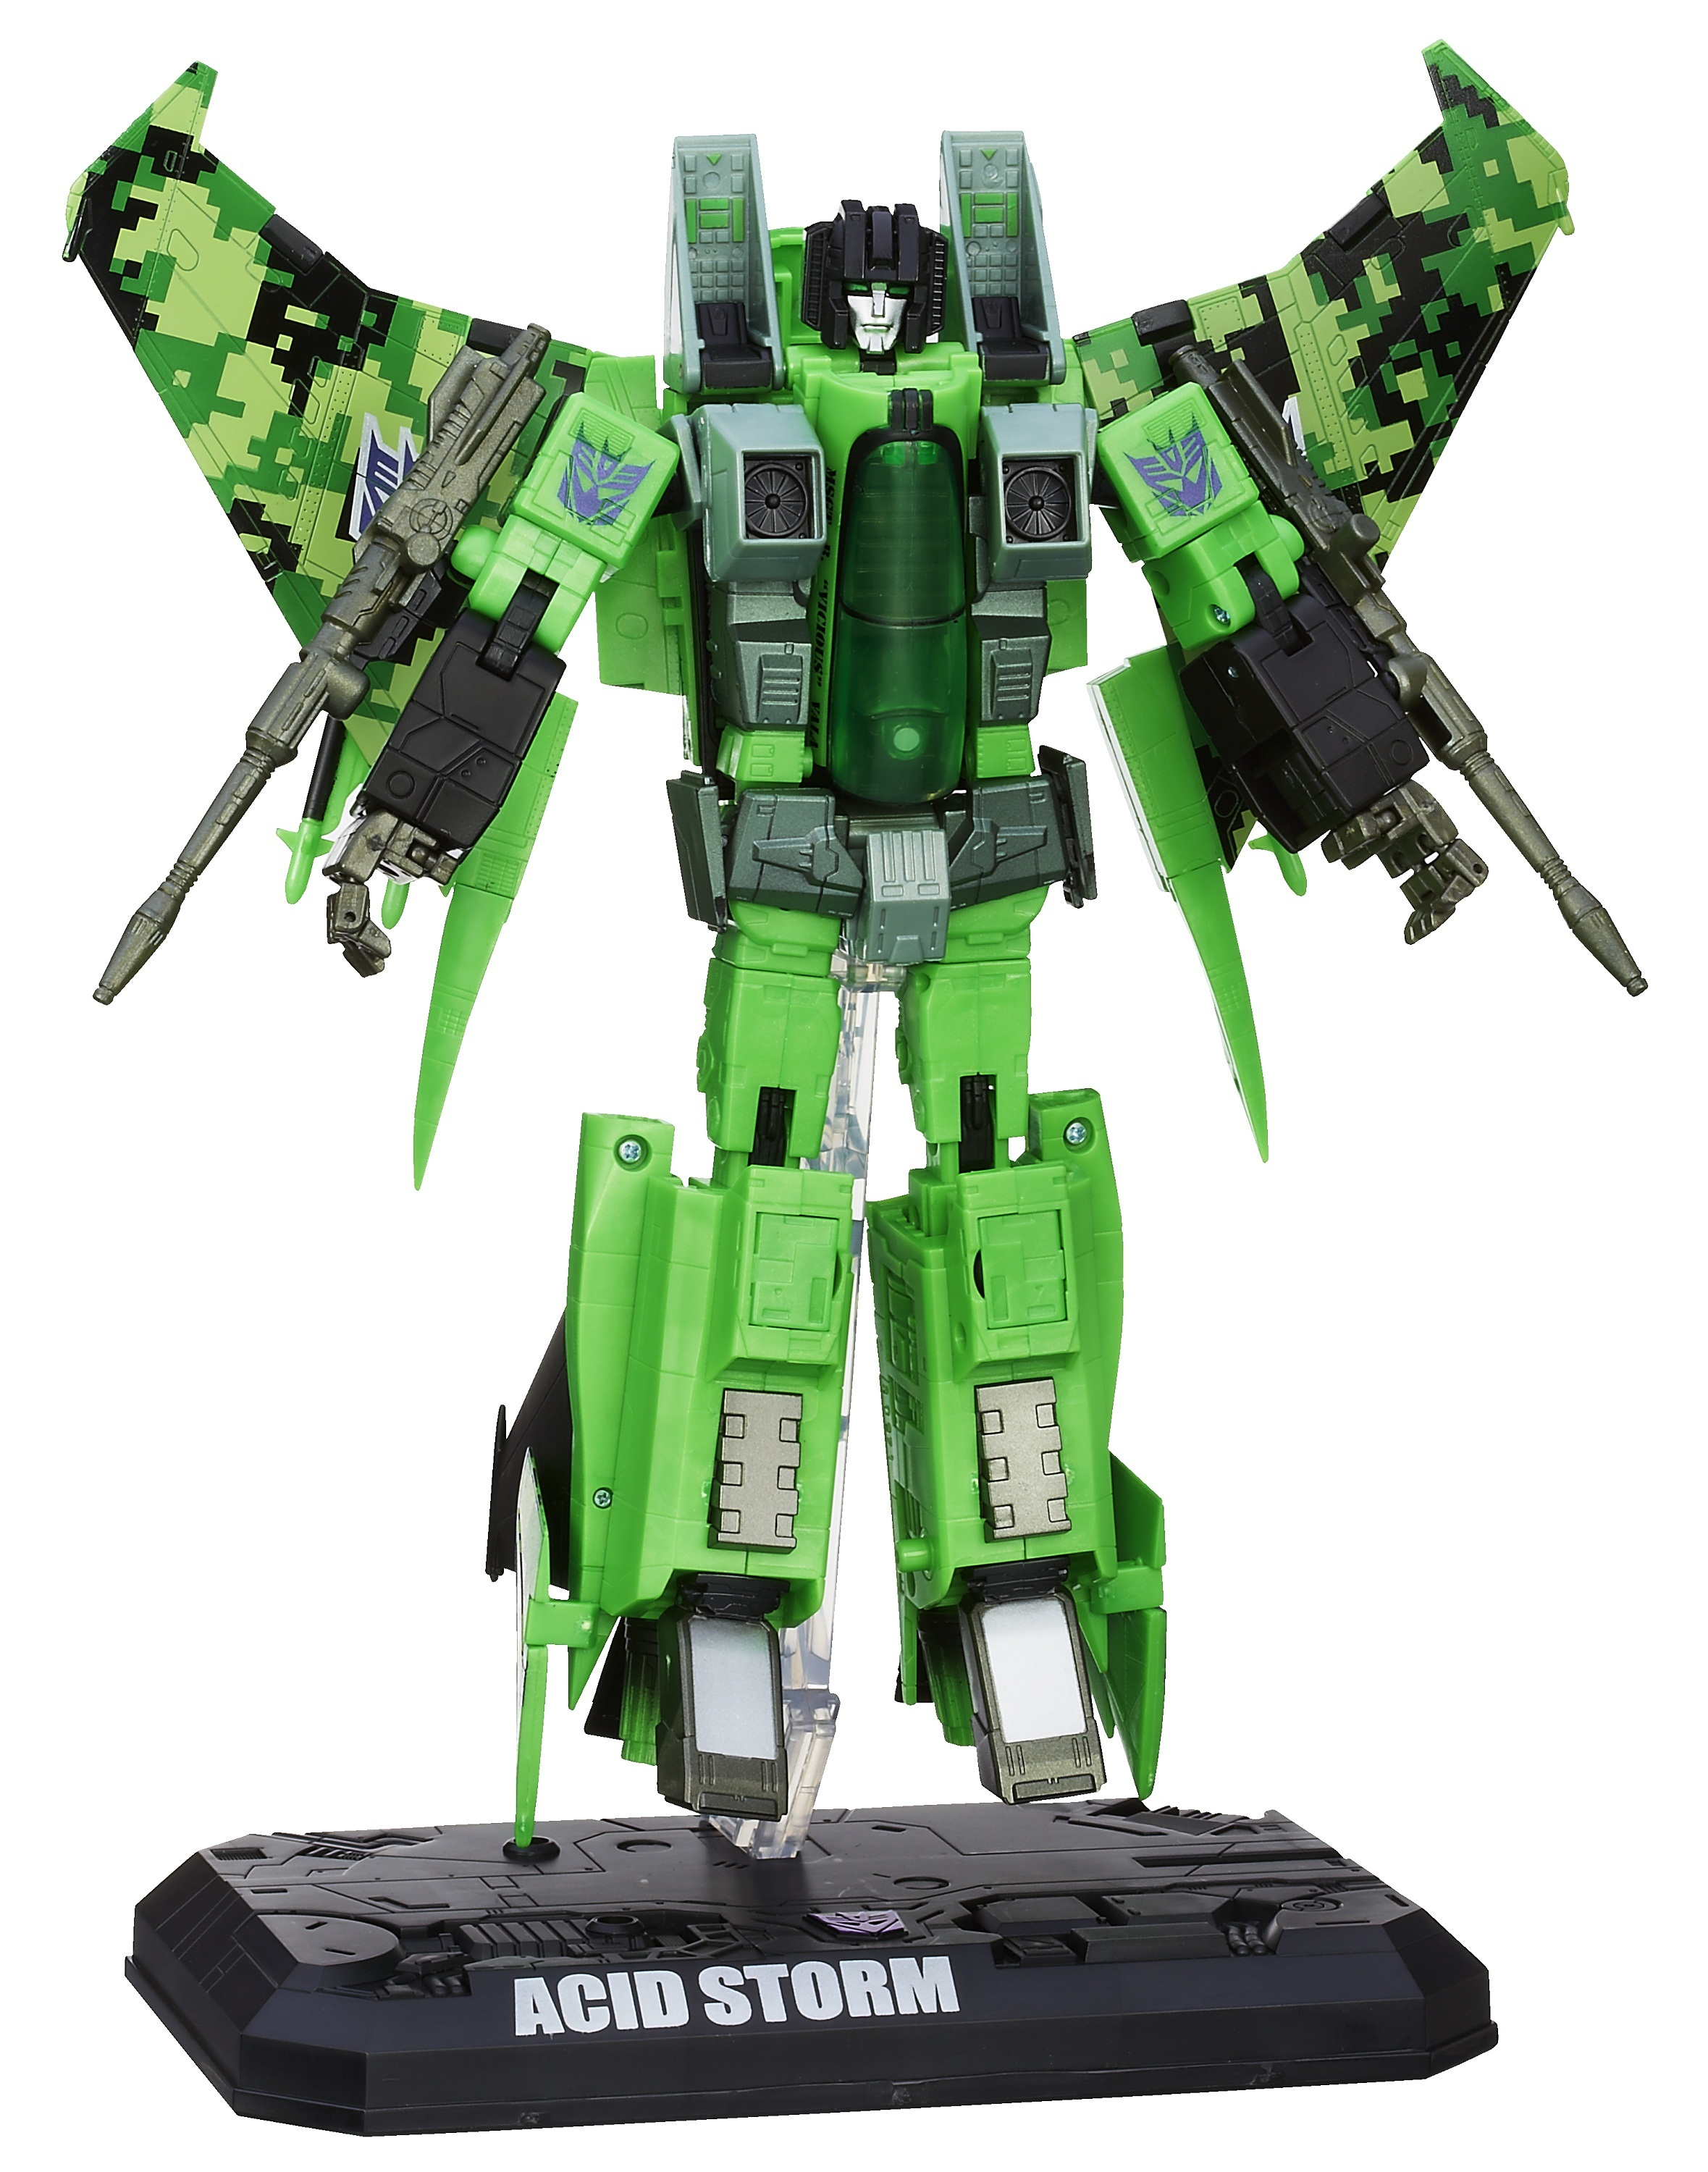 Transformers Masterpiece Acid Storm 2